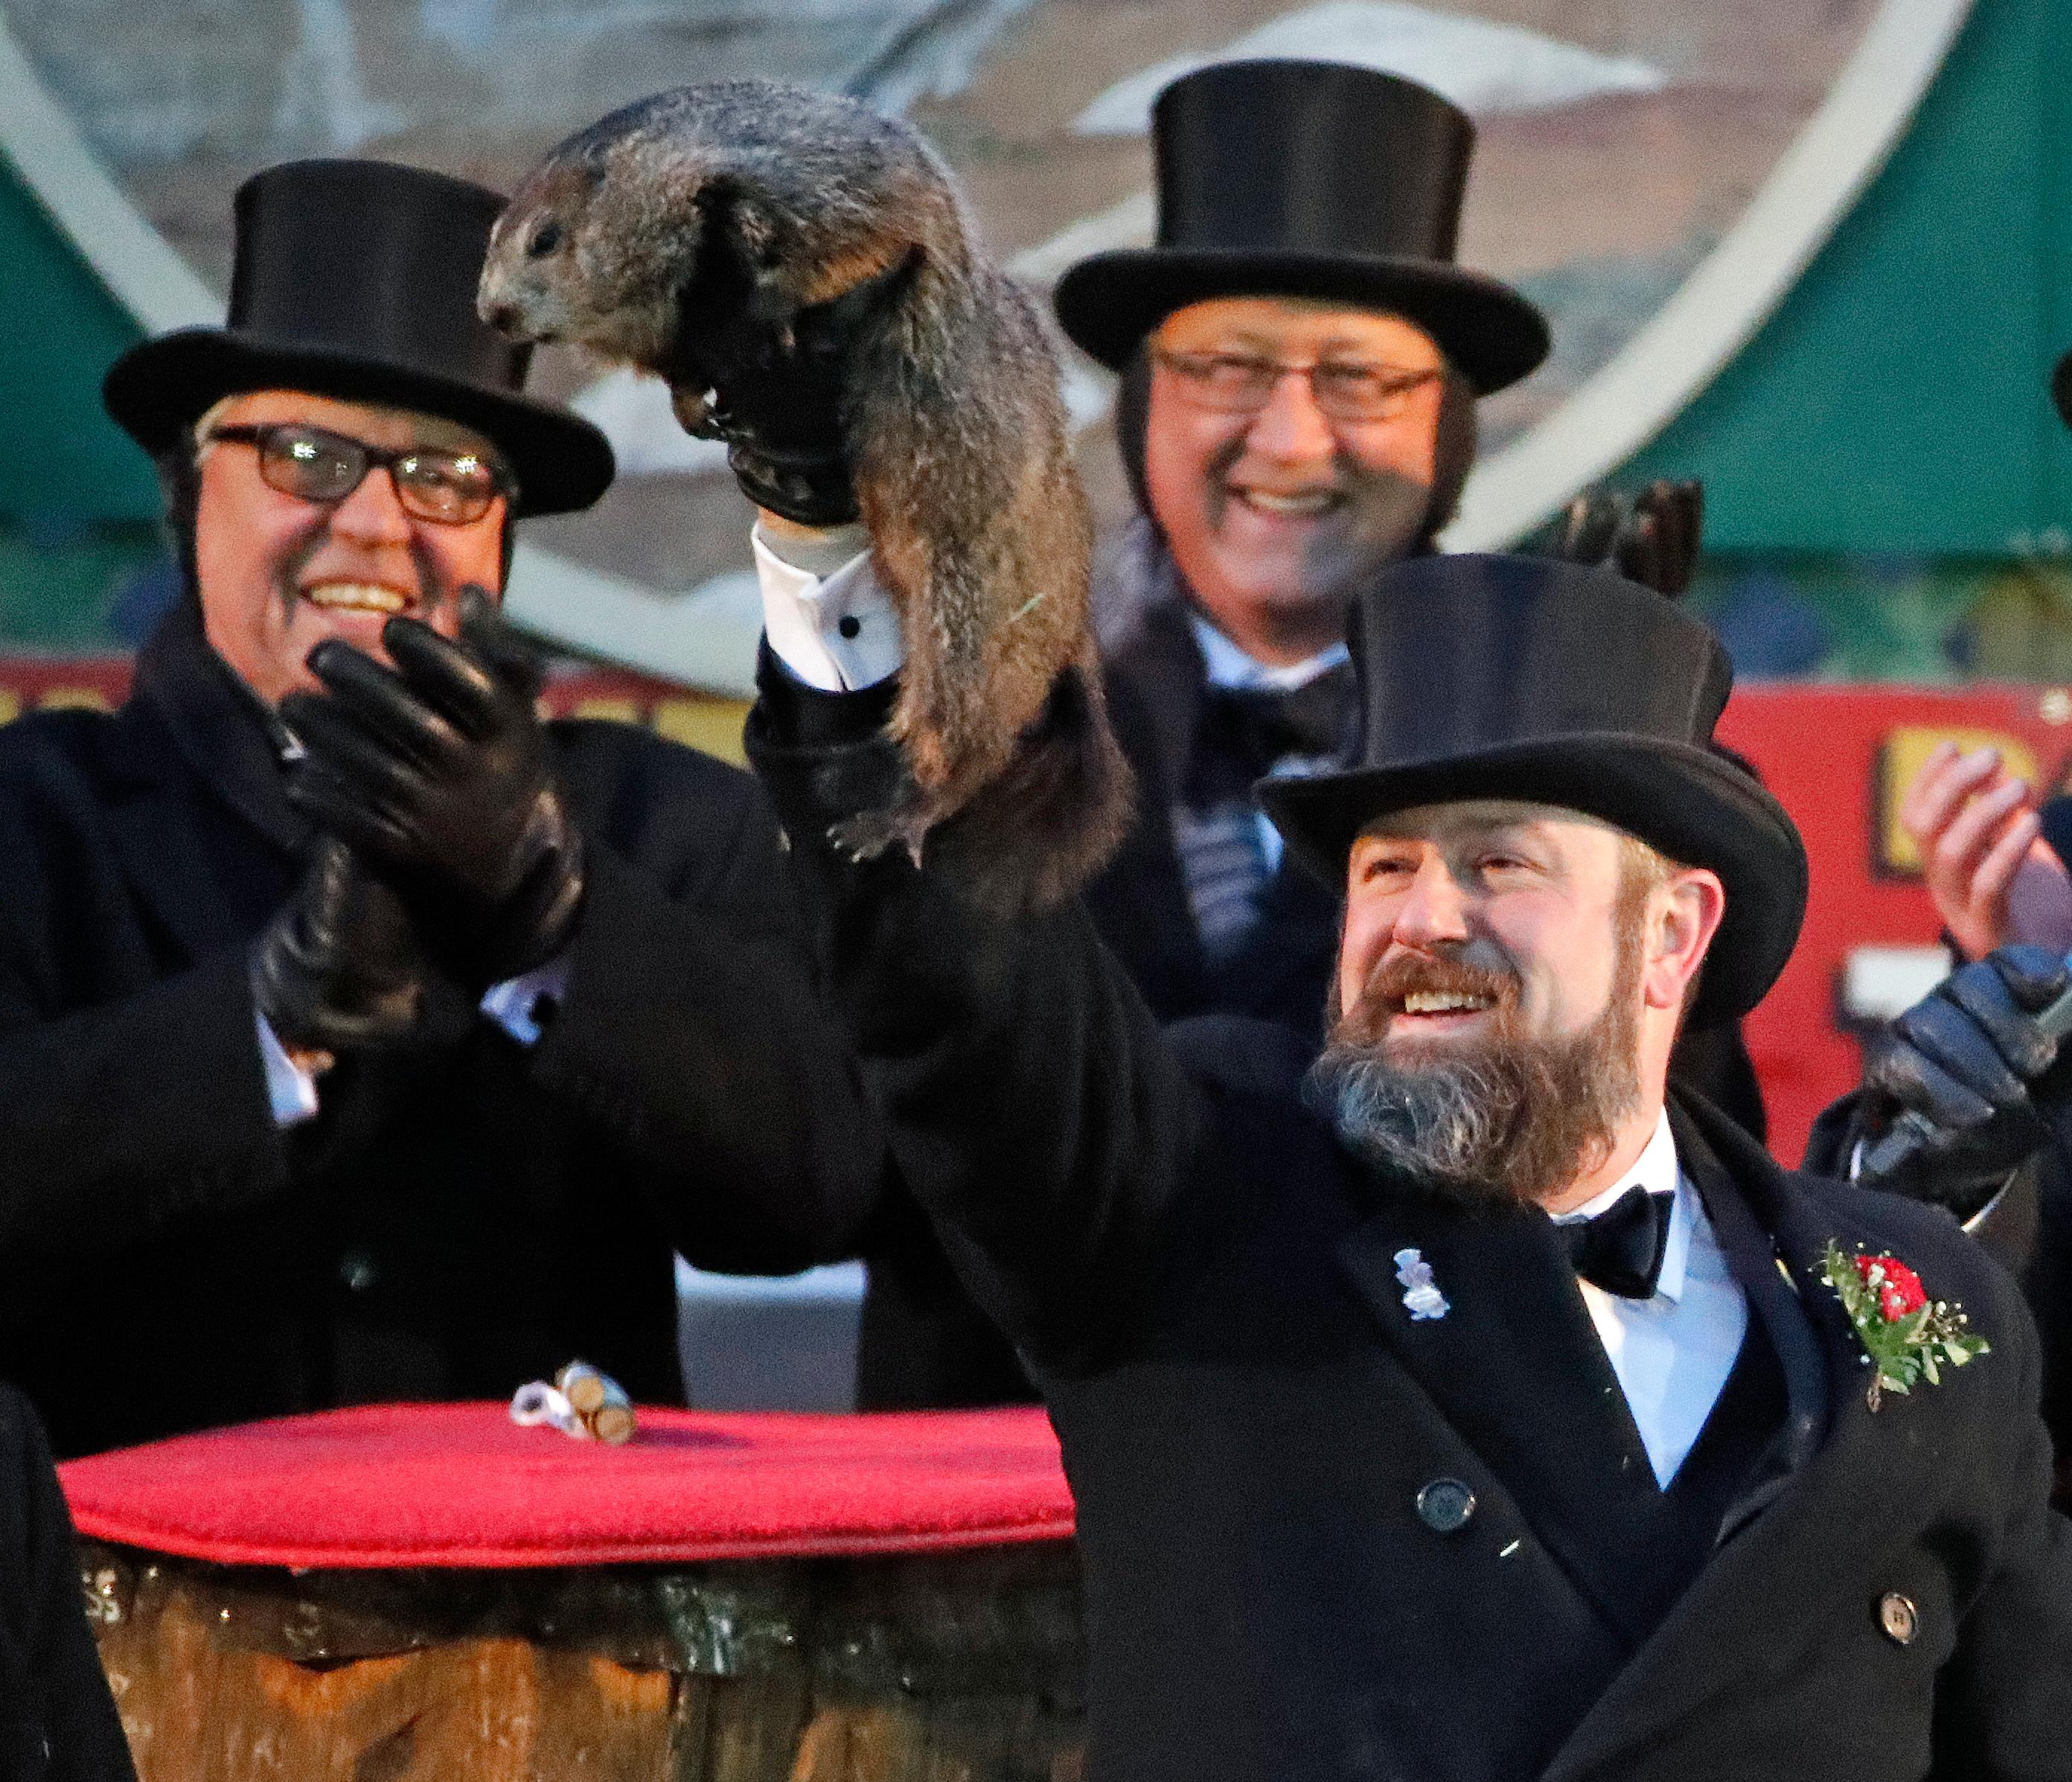 Groundhog Club co-handler Al Dereume holds Punxsutawney Phil, the weather prognosticating groundhog, during the 132nd celebration of Groundhog Day on Gobbler's Knob in Punxsutawney, Pa. Friday, Feb. 2, 2018. Phil's handlers said that the groundhog has forecast six more weeks of winter weather. (AP Photo/Gene J. Puskar)